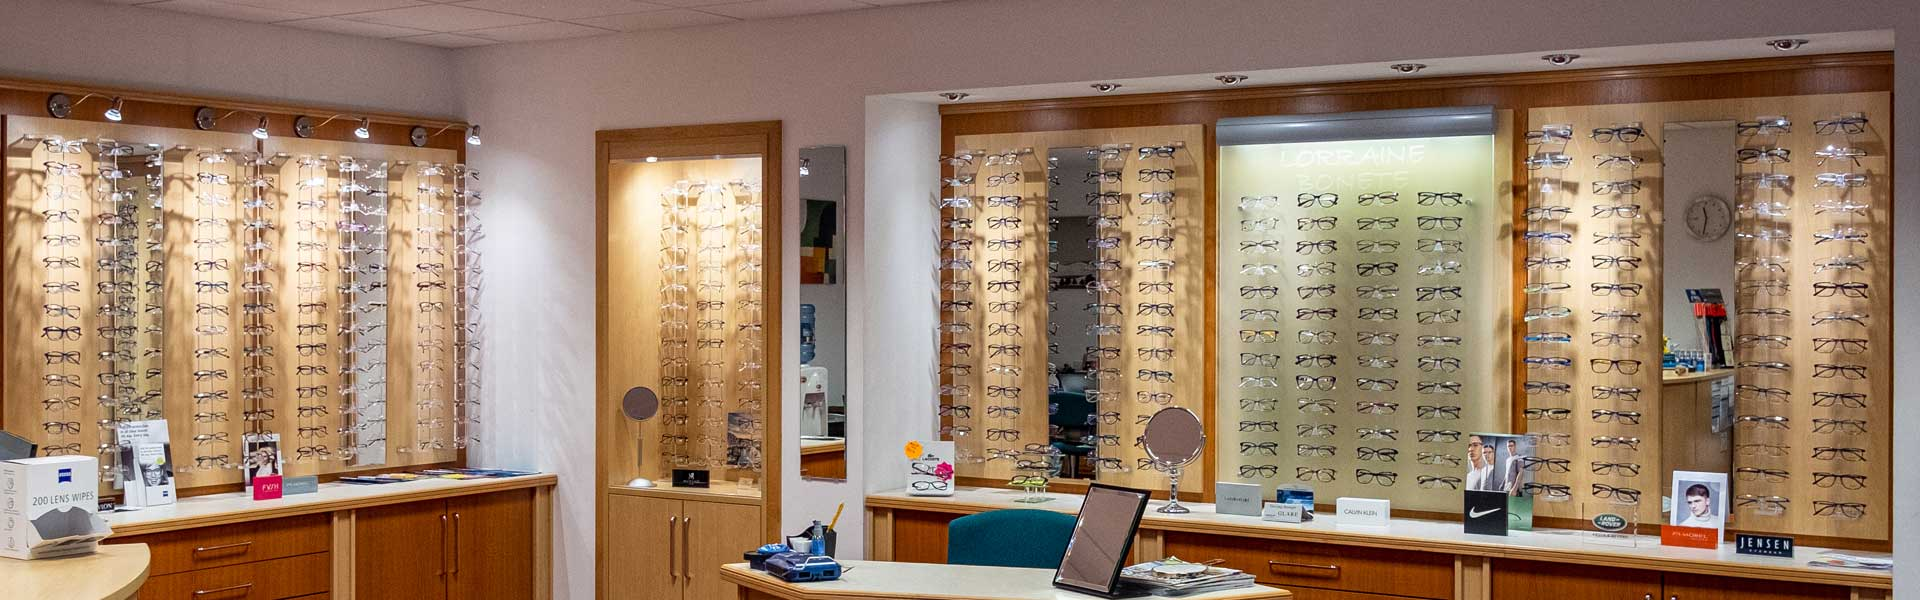 Lorraine Bonete Opticians Showroom